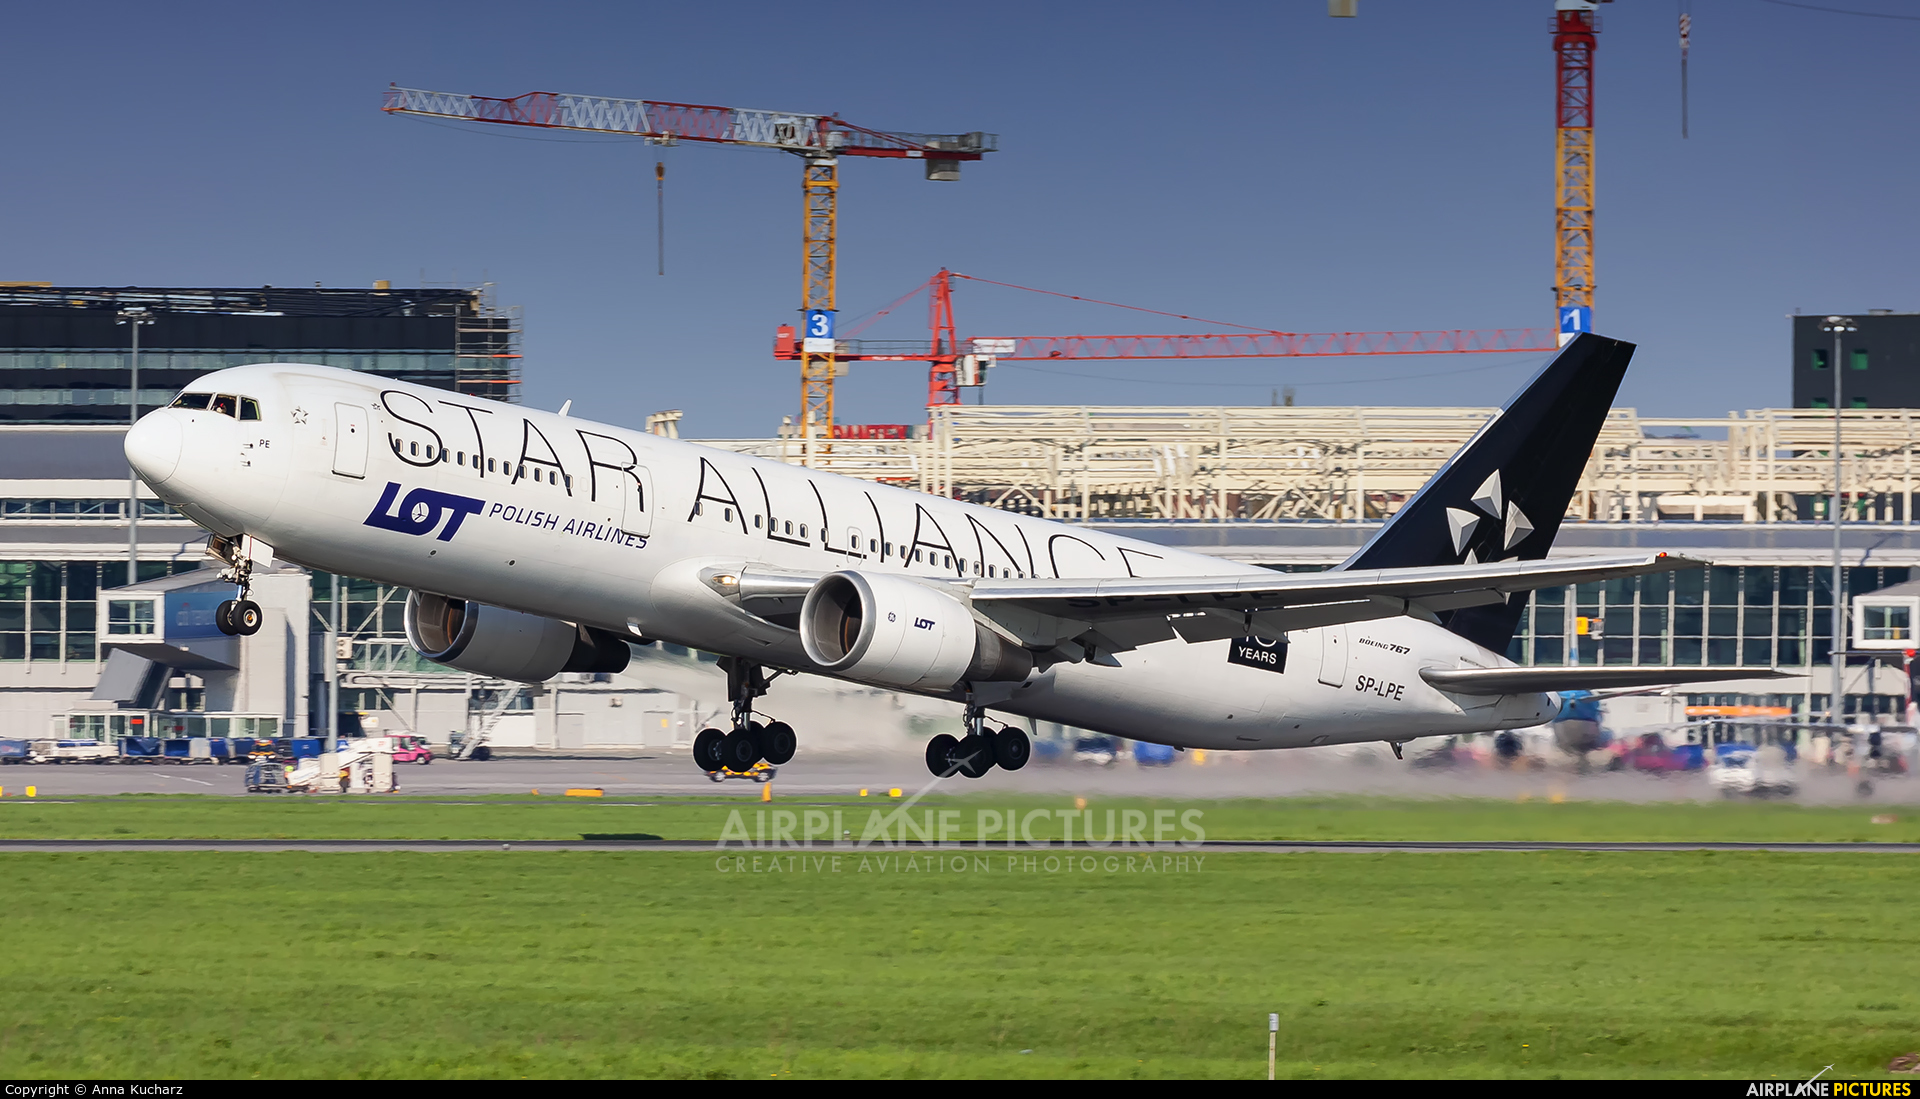 LOT - Polish Airlines SP-LPE aircraft at Warsaw - Frederic Chopin